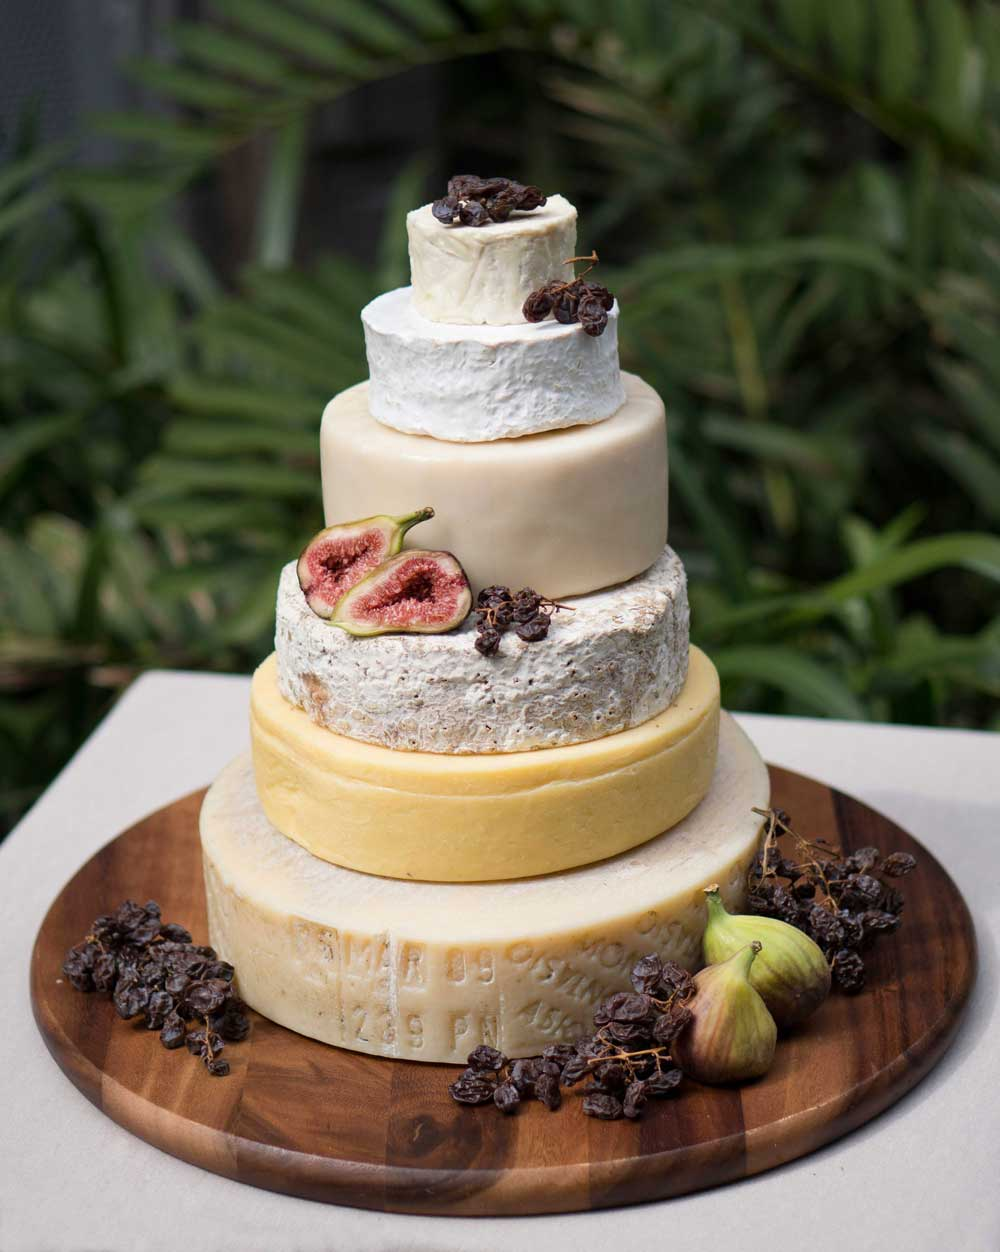 Pricing 2018 (canape sized portions with some to take home)   THREE TIER (serves upto 70 people) $490  Jacks English Club Cheddar 3kg  Enterprize Double Brie 1.5kg  Grub Cashel Irish Blue 1.4kg  FOUR TIER (serves upto 100 people) $680  Berrys Creek Tarwin Blue 3kg  Fromager Daffinois 2kg  Lartisan Fermier 1kg  W/Studd Brillat Savarin 200g  SIX TIER (serves upto 200 people) $850  Heidi Tilsit 4kg  Berrys Creek Tarvin Blue 1.5kg  Tarago Triple Cream 1.5kg  Lartisan Fermier 1kg  Miliwa Brie 500g  Yvd Black Sav Pyramid 110g  All cheese towers come decorated with grapes and served with quince paste and a selection of crackers.  Speak to your event planner about ordering for your wedding day!